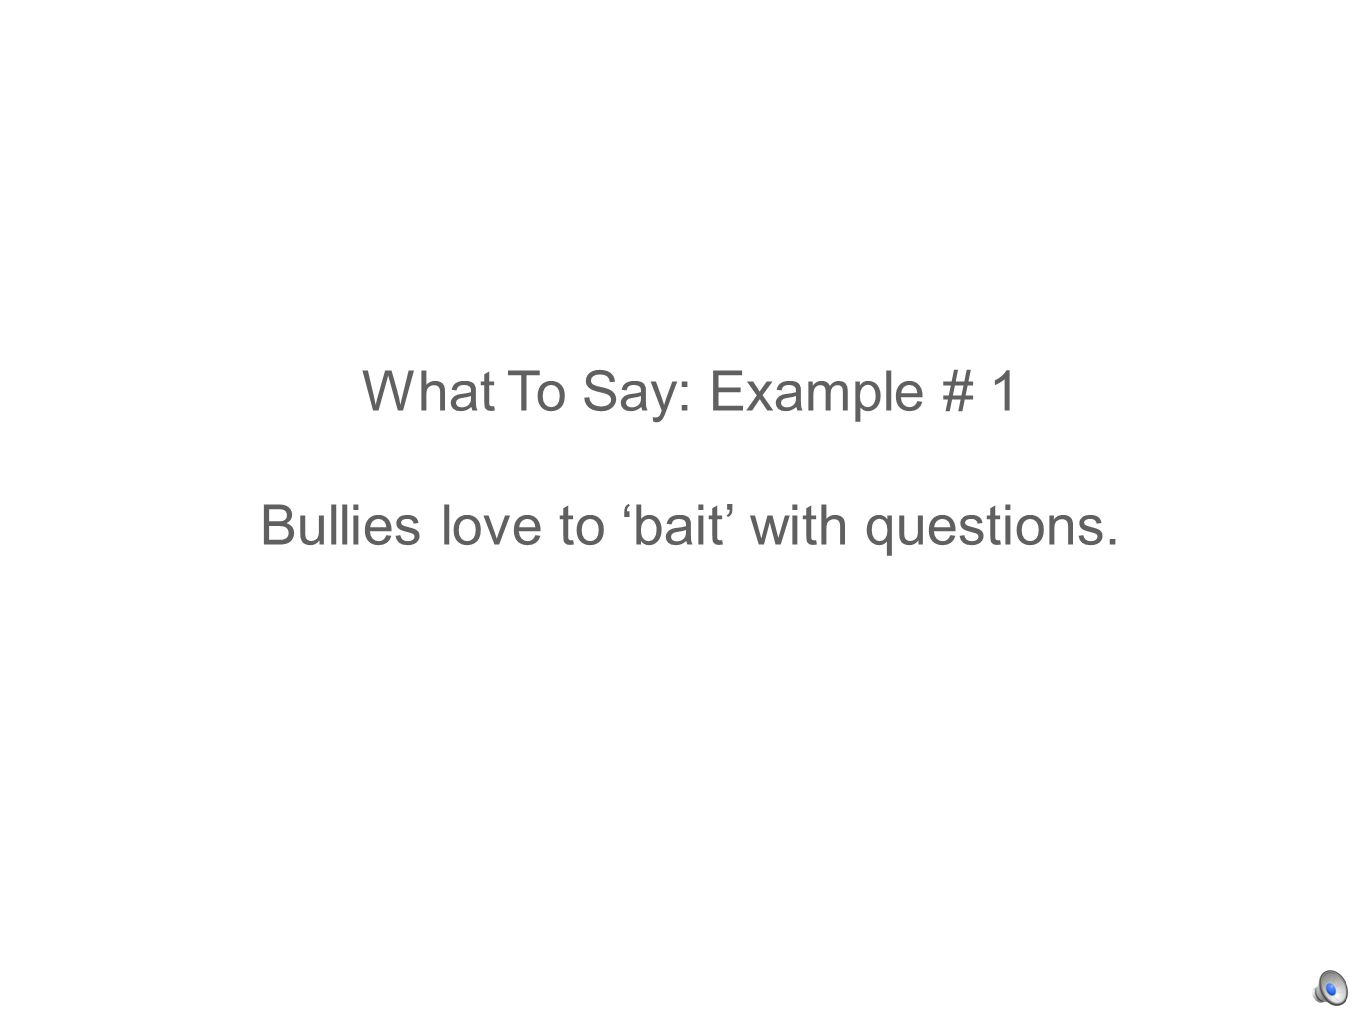 What To Say: Example # 1 Bullies love to bait with questions.